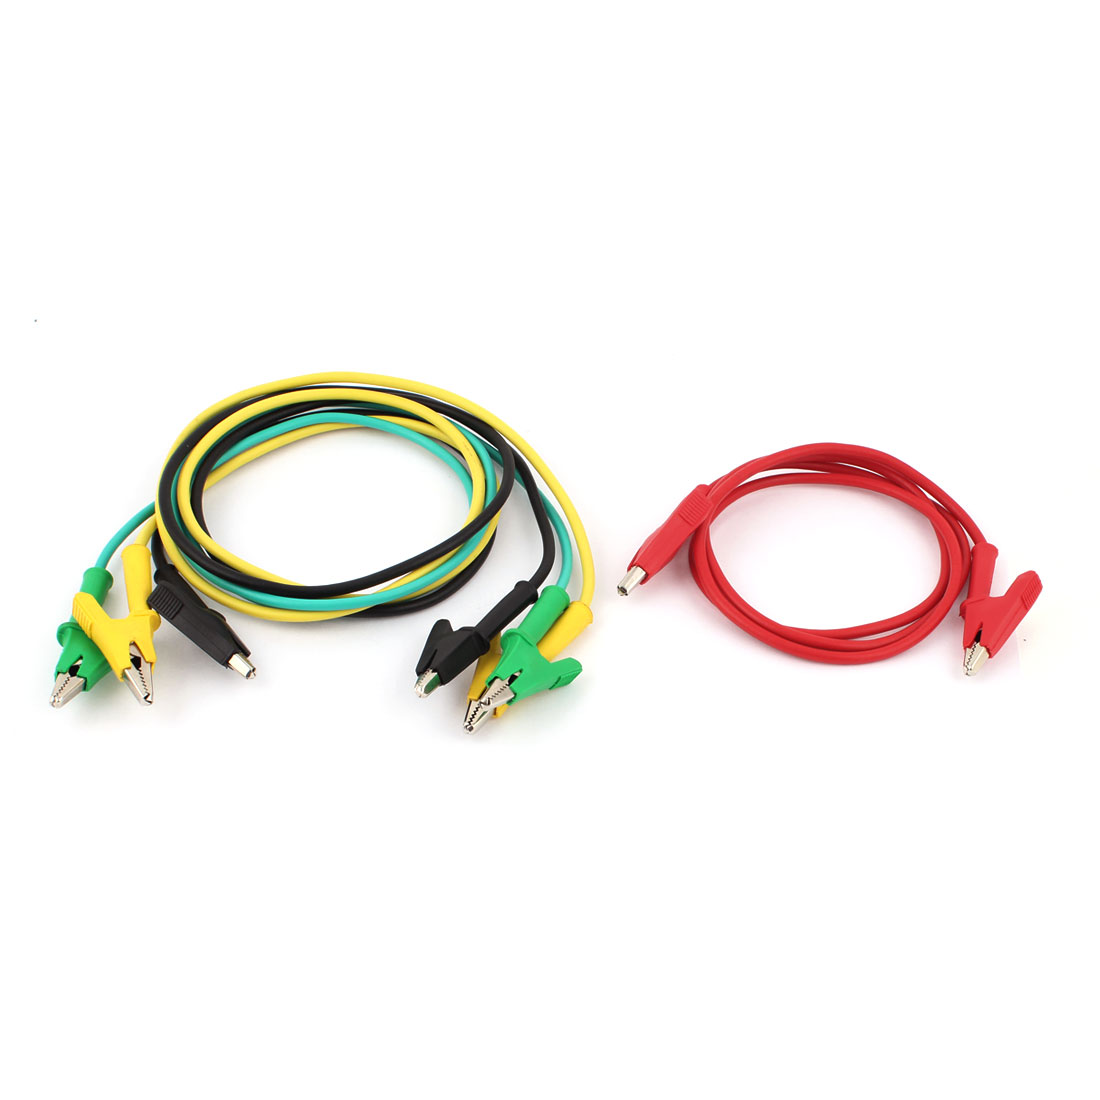 4 Pcs 1m Long Alligator Clip Electrical Clamp Insulated Test Lead Cable